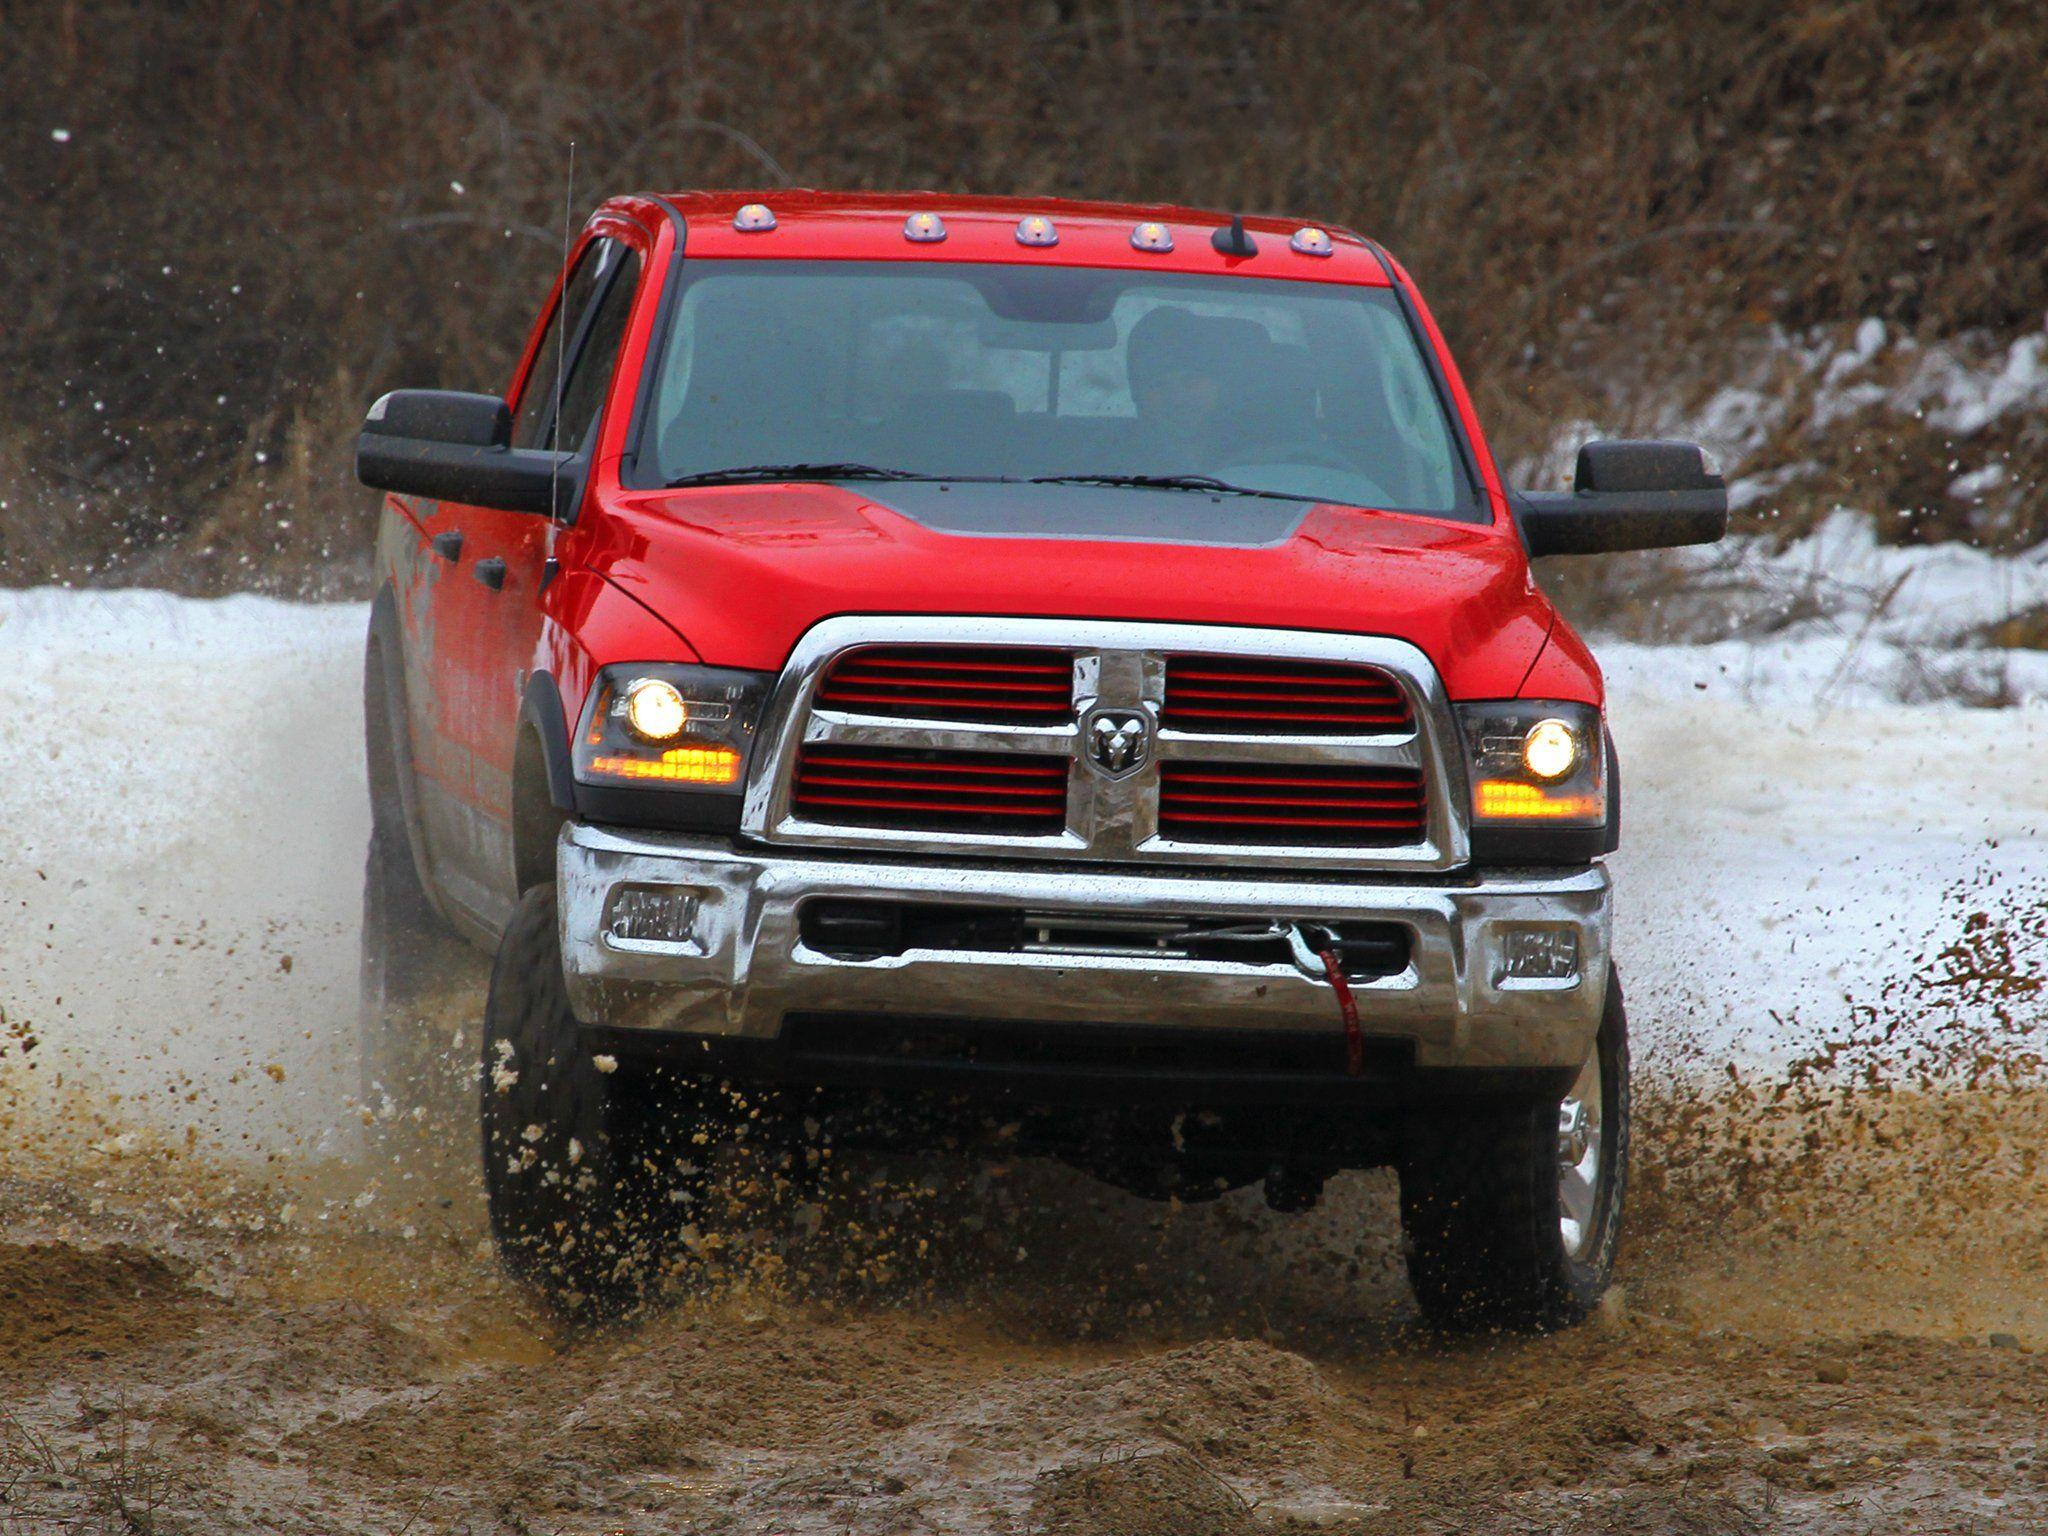 2014 Dodge Ram 2500 Power Wagon pickup 4x4 ds wallpapers